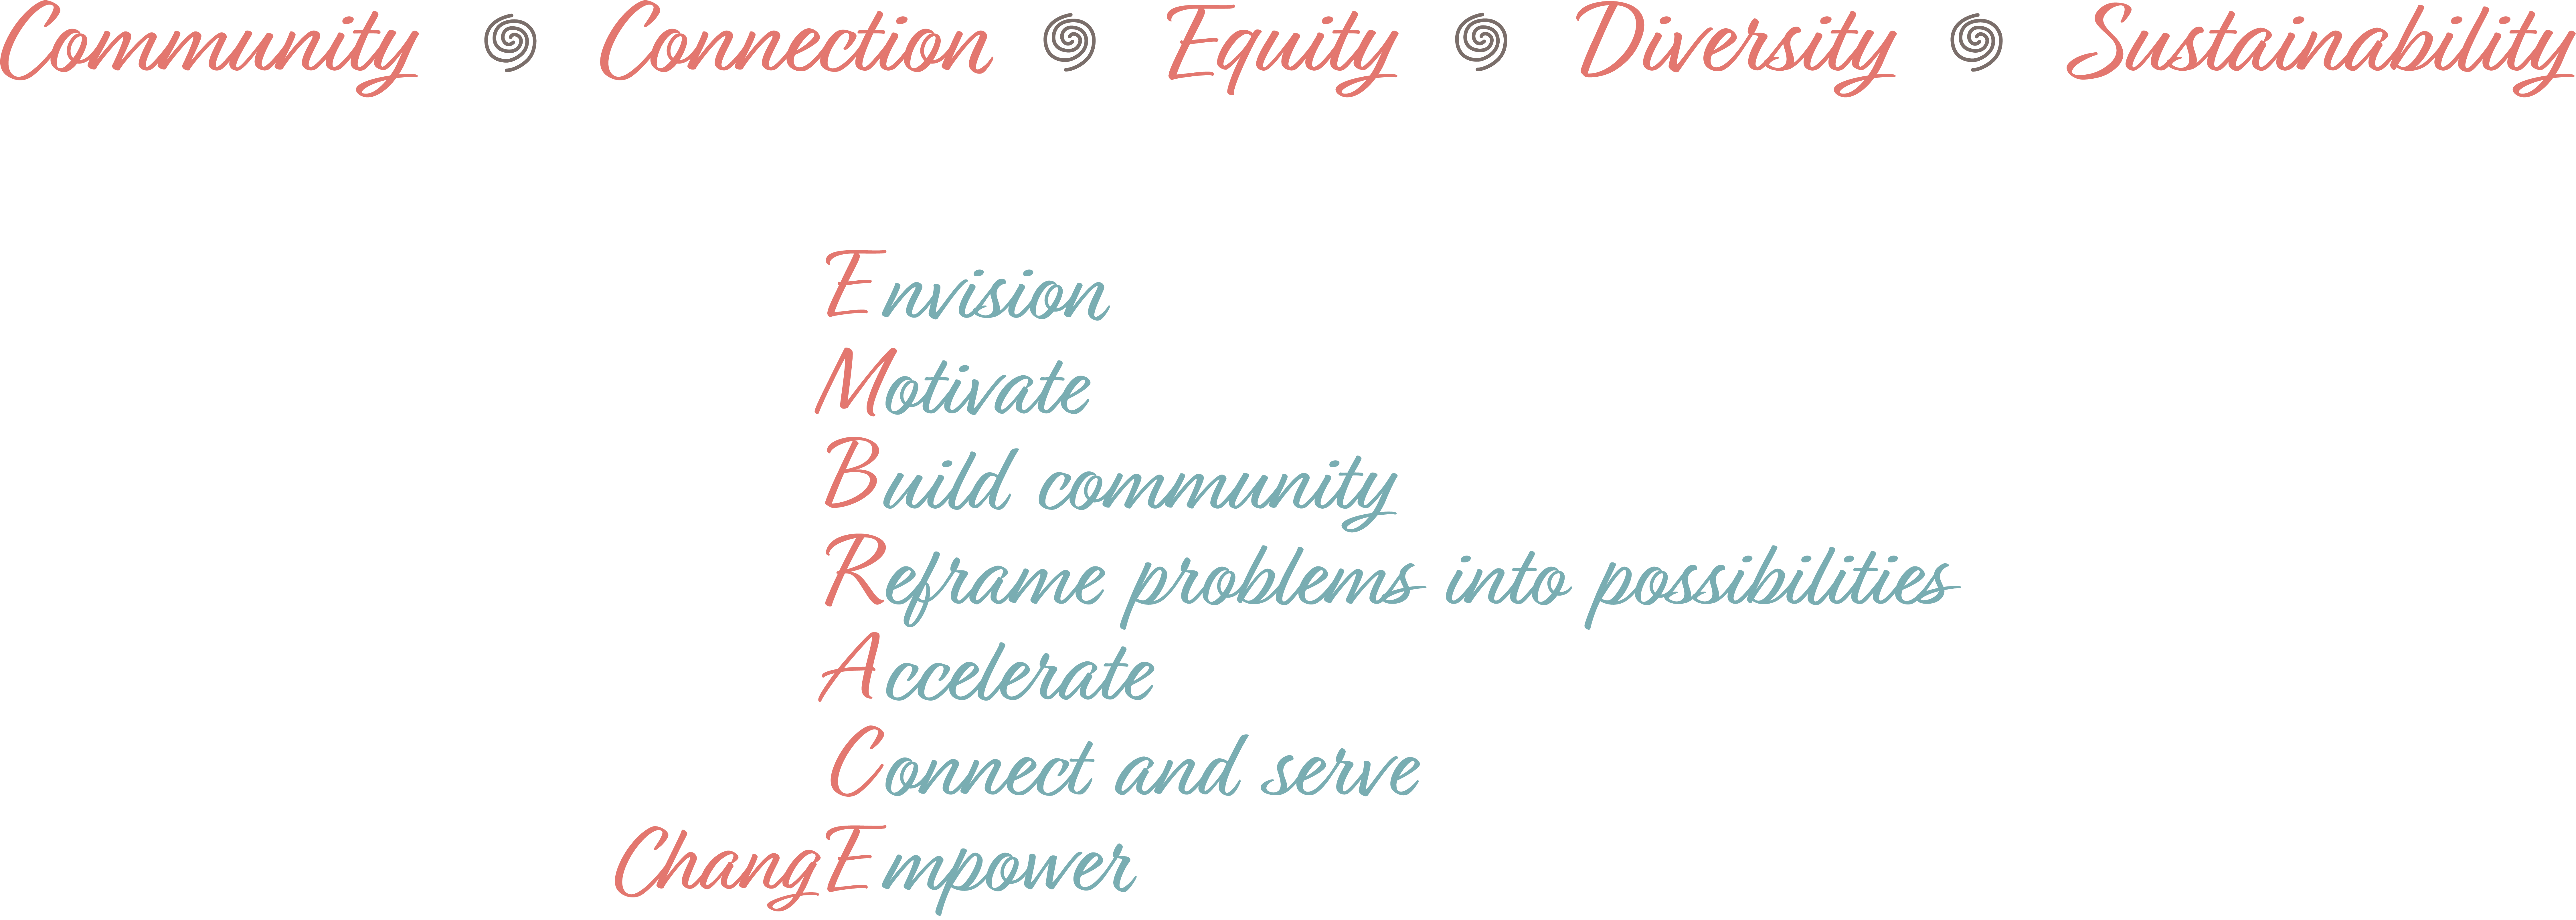 Community Connection Equity Diversity Sustainability Embrace Change